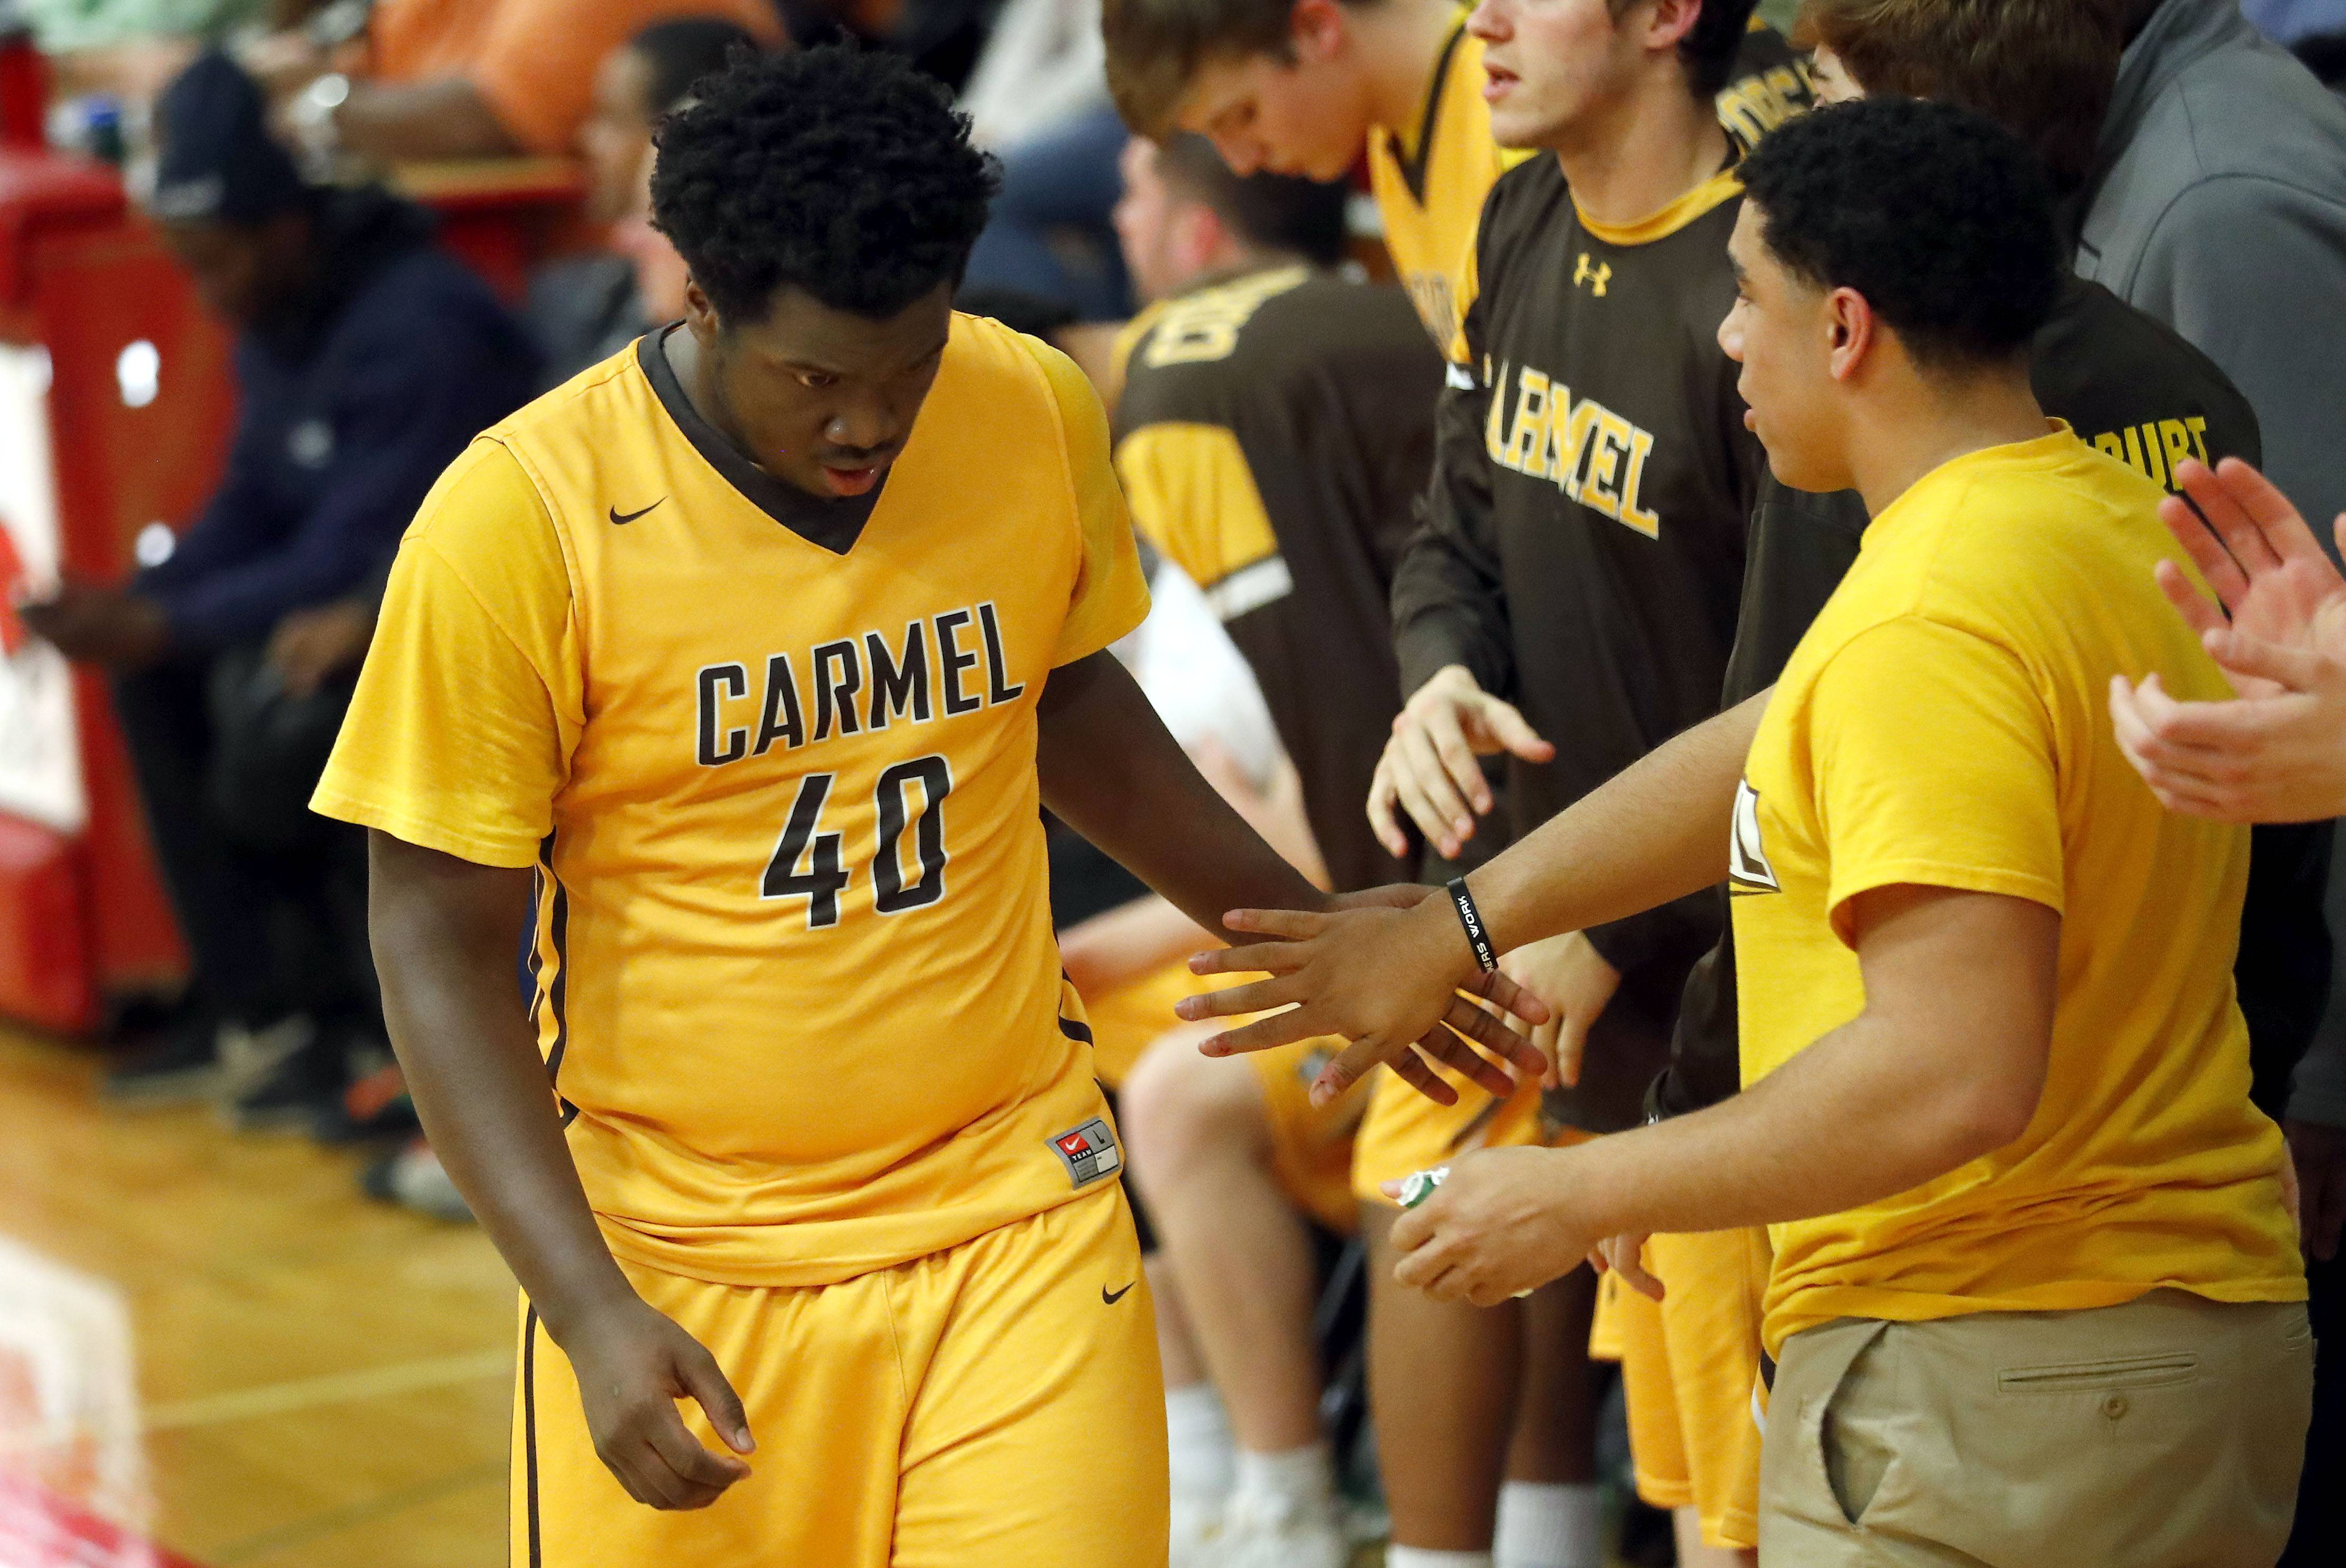 Carmel's Jalen Snell fouls out during Class 3A sectional semifinal play Wednesday at North Chicago.